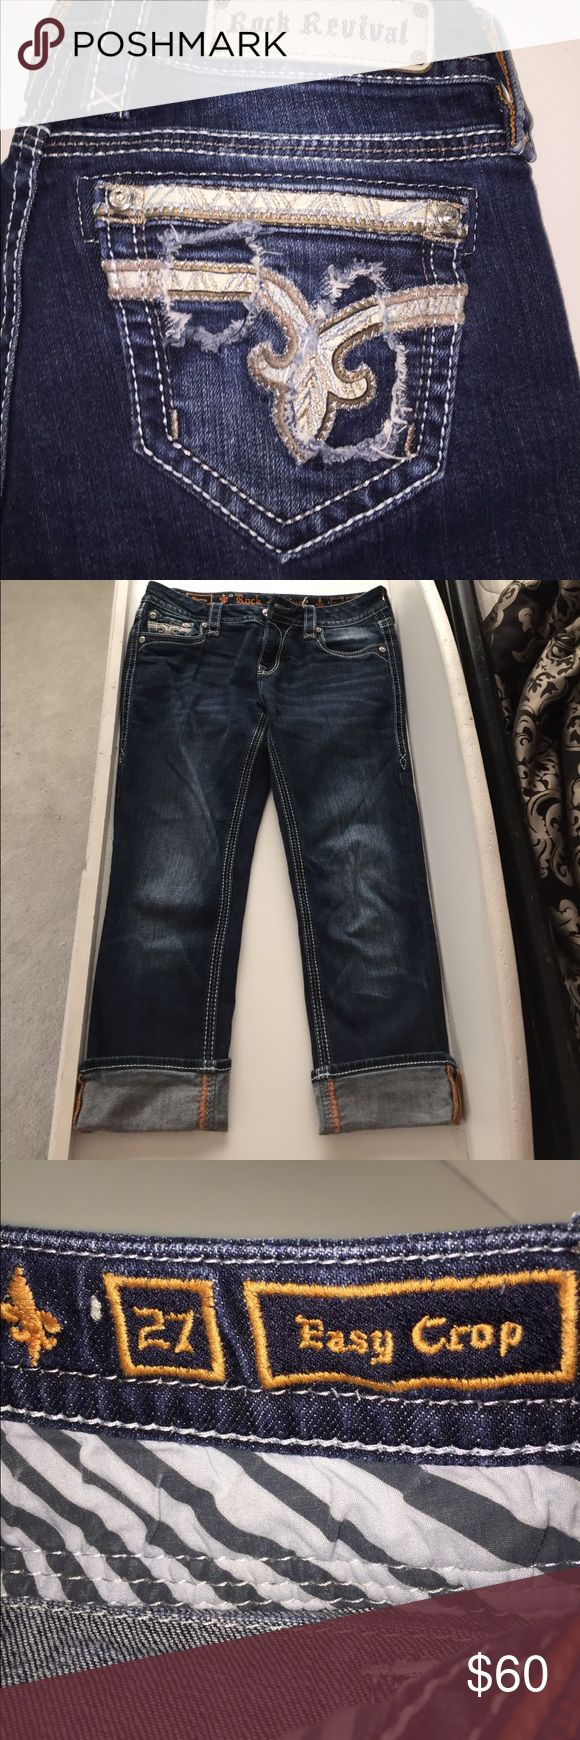 Nancy Crop Rock Revival Jeans In like new conditions with no flaws. These are a Capri or cropped cut :) soft and stretchy material. Make a reasonable offer ❤️ Rock Revival Jeans Ankle & Cropped